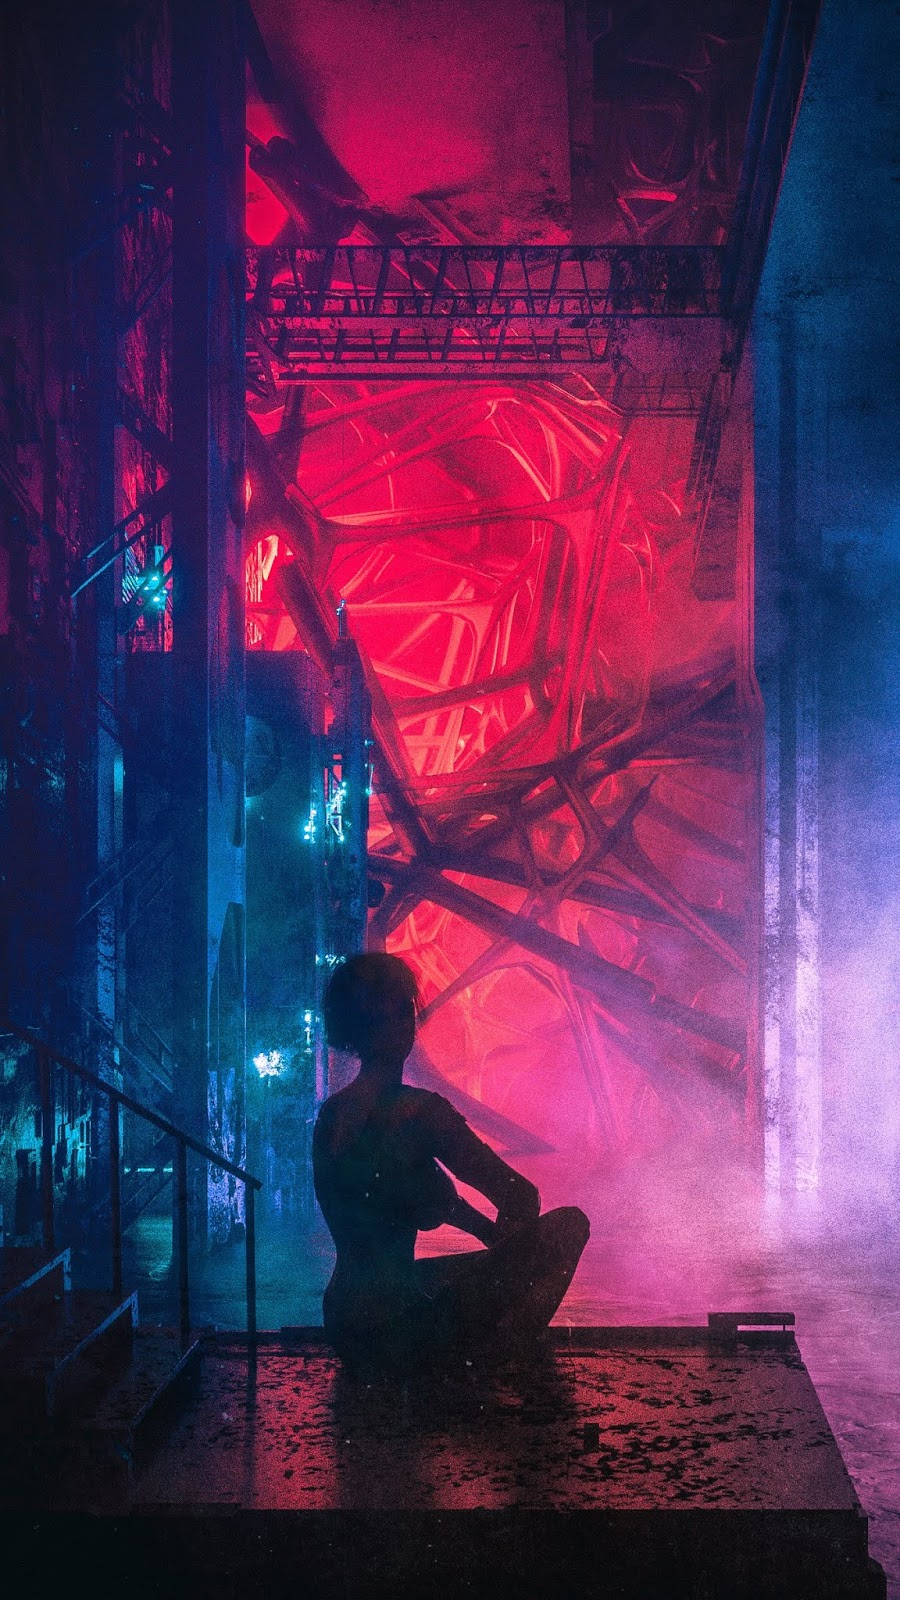 cyberpunk girl silhuete red purple and blue light wallpaper hd 1080 x 1920 pixel